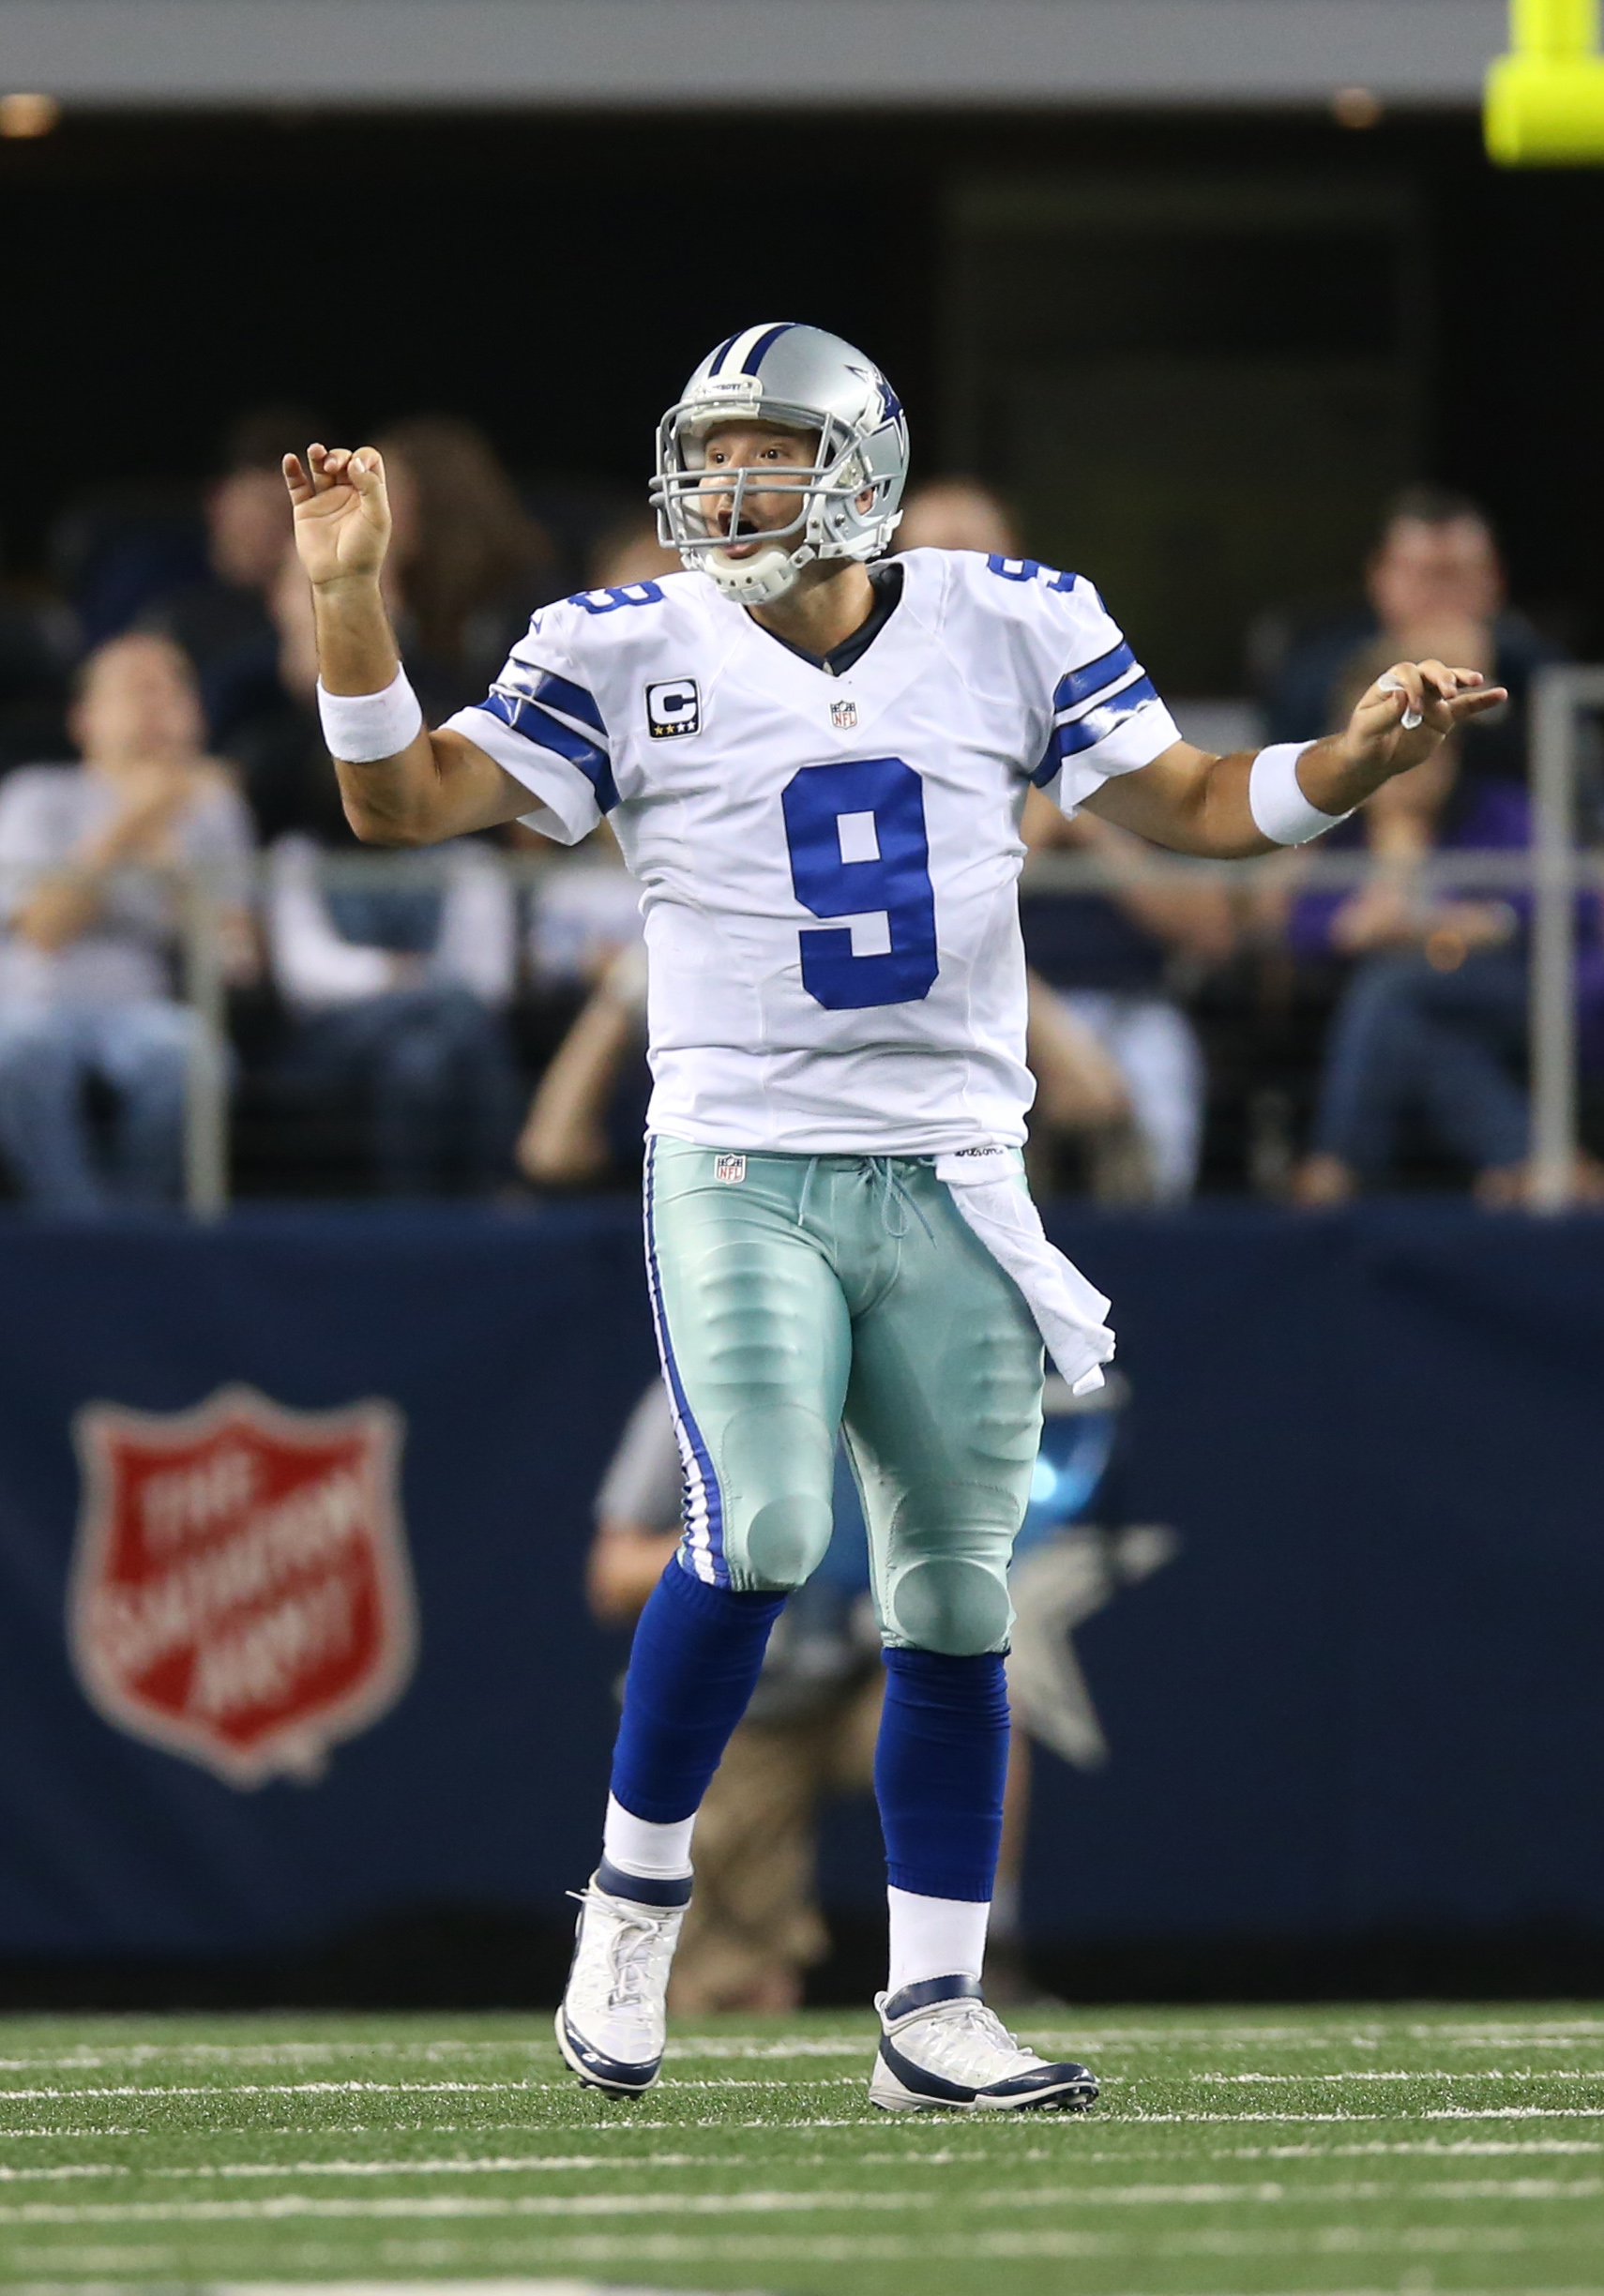 Tony Romo calls out a play against the Eagles last season. (USA TODAY Sports)